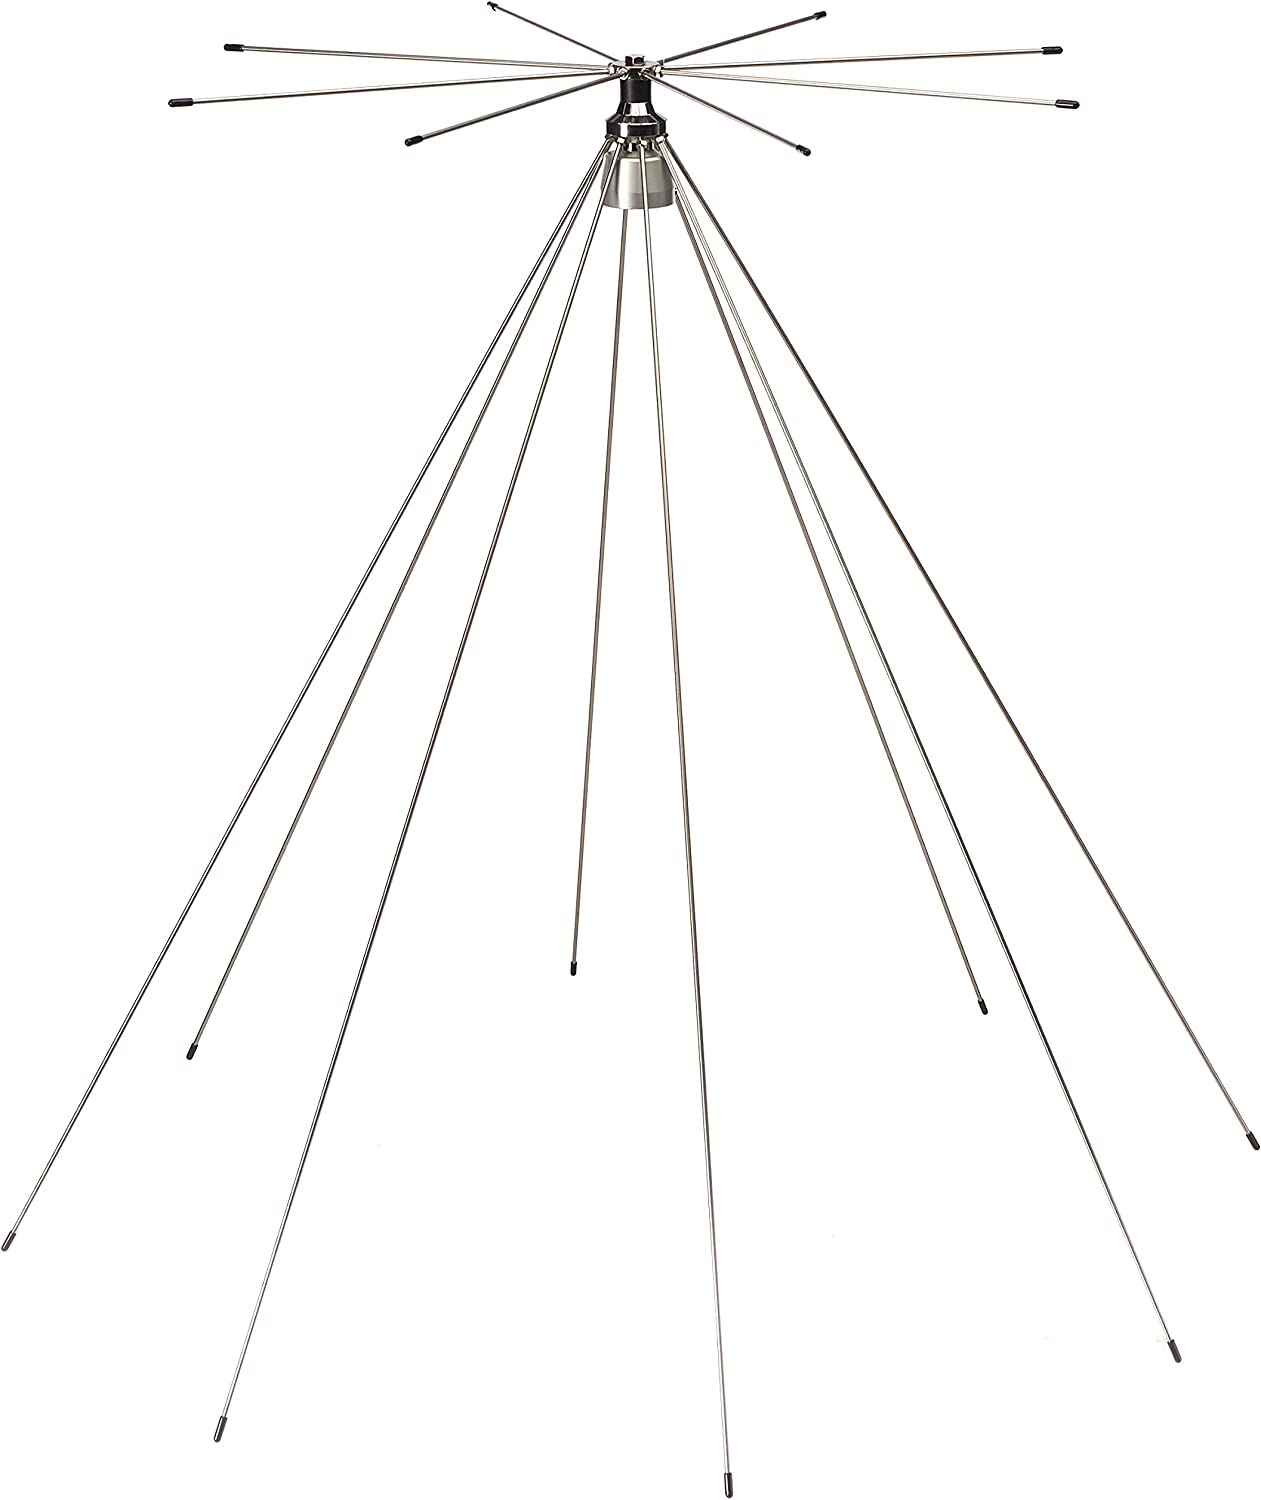 Tram 1410 Broad Band Discone/Scanner Base Antenna